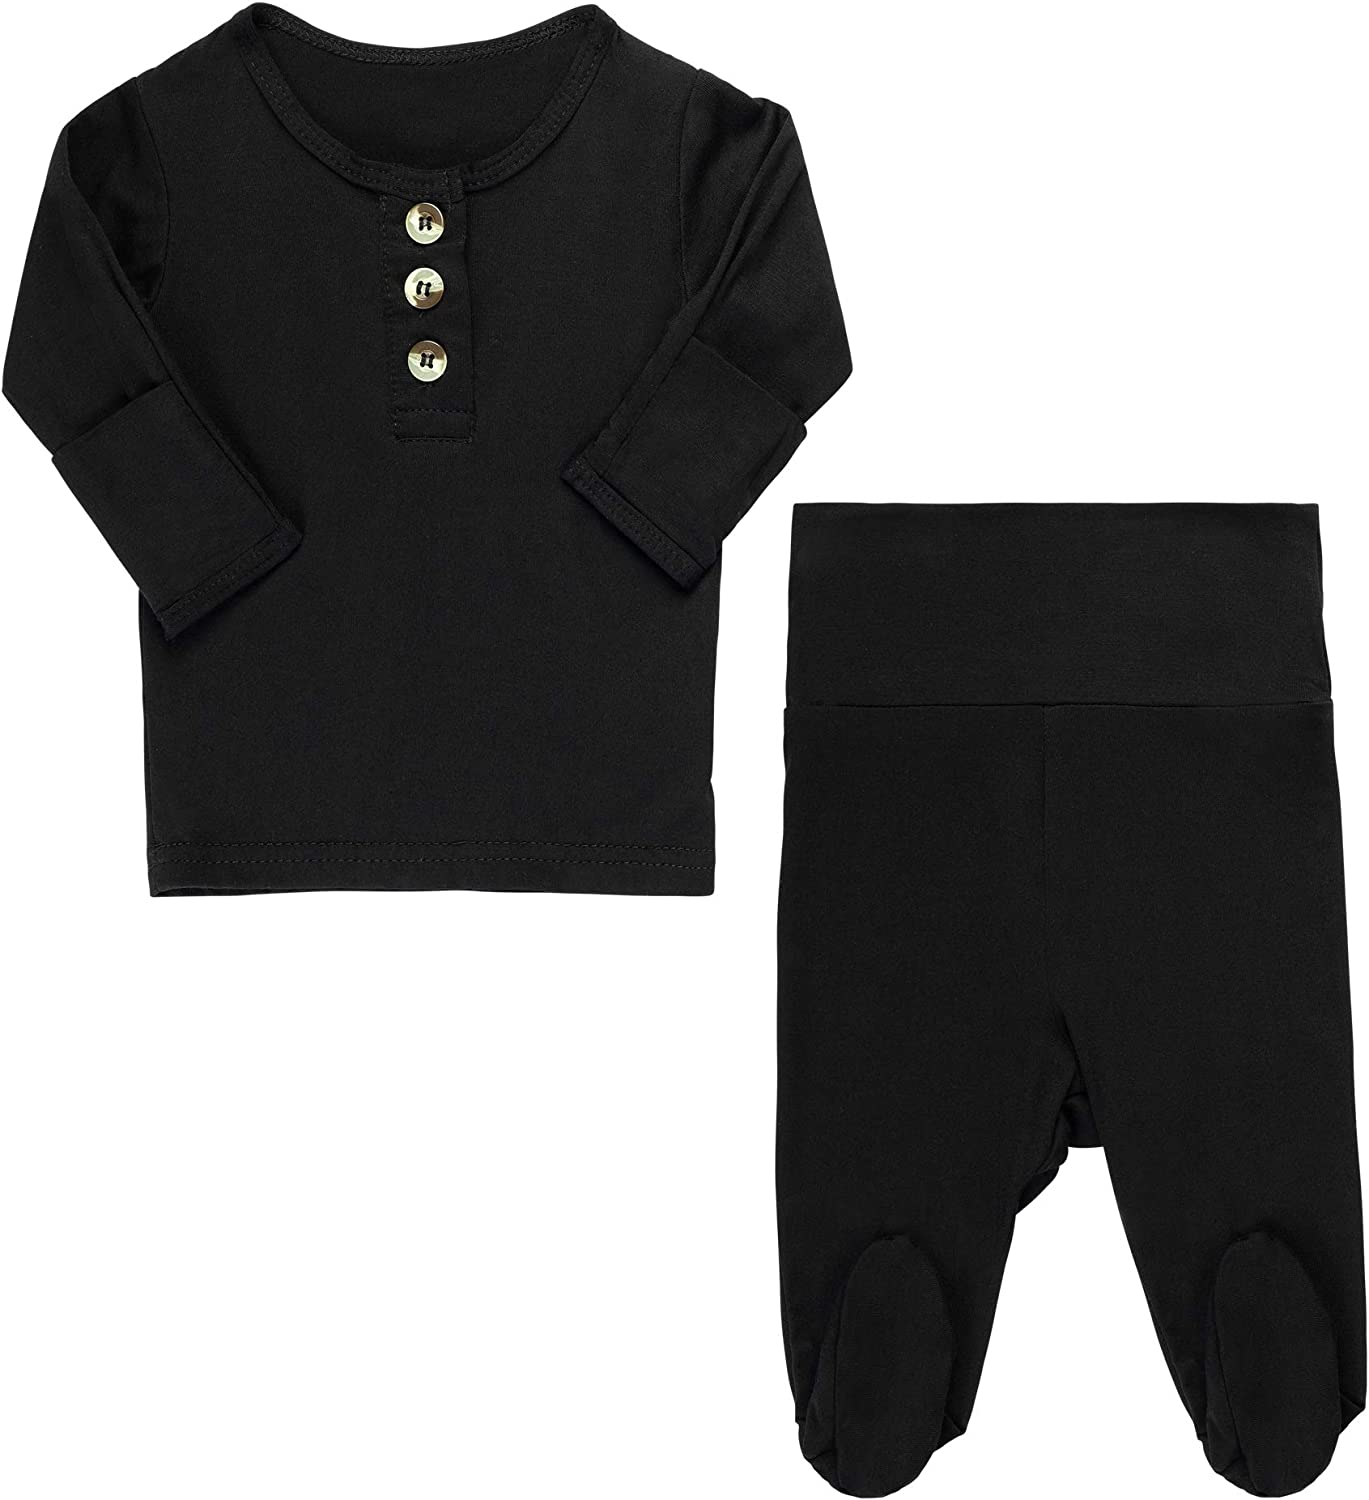 Top + Bottom Unisex Going Home Outfit Baby Boy - Girl | Newborn Boy Take Home Outfit Set